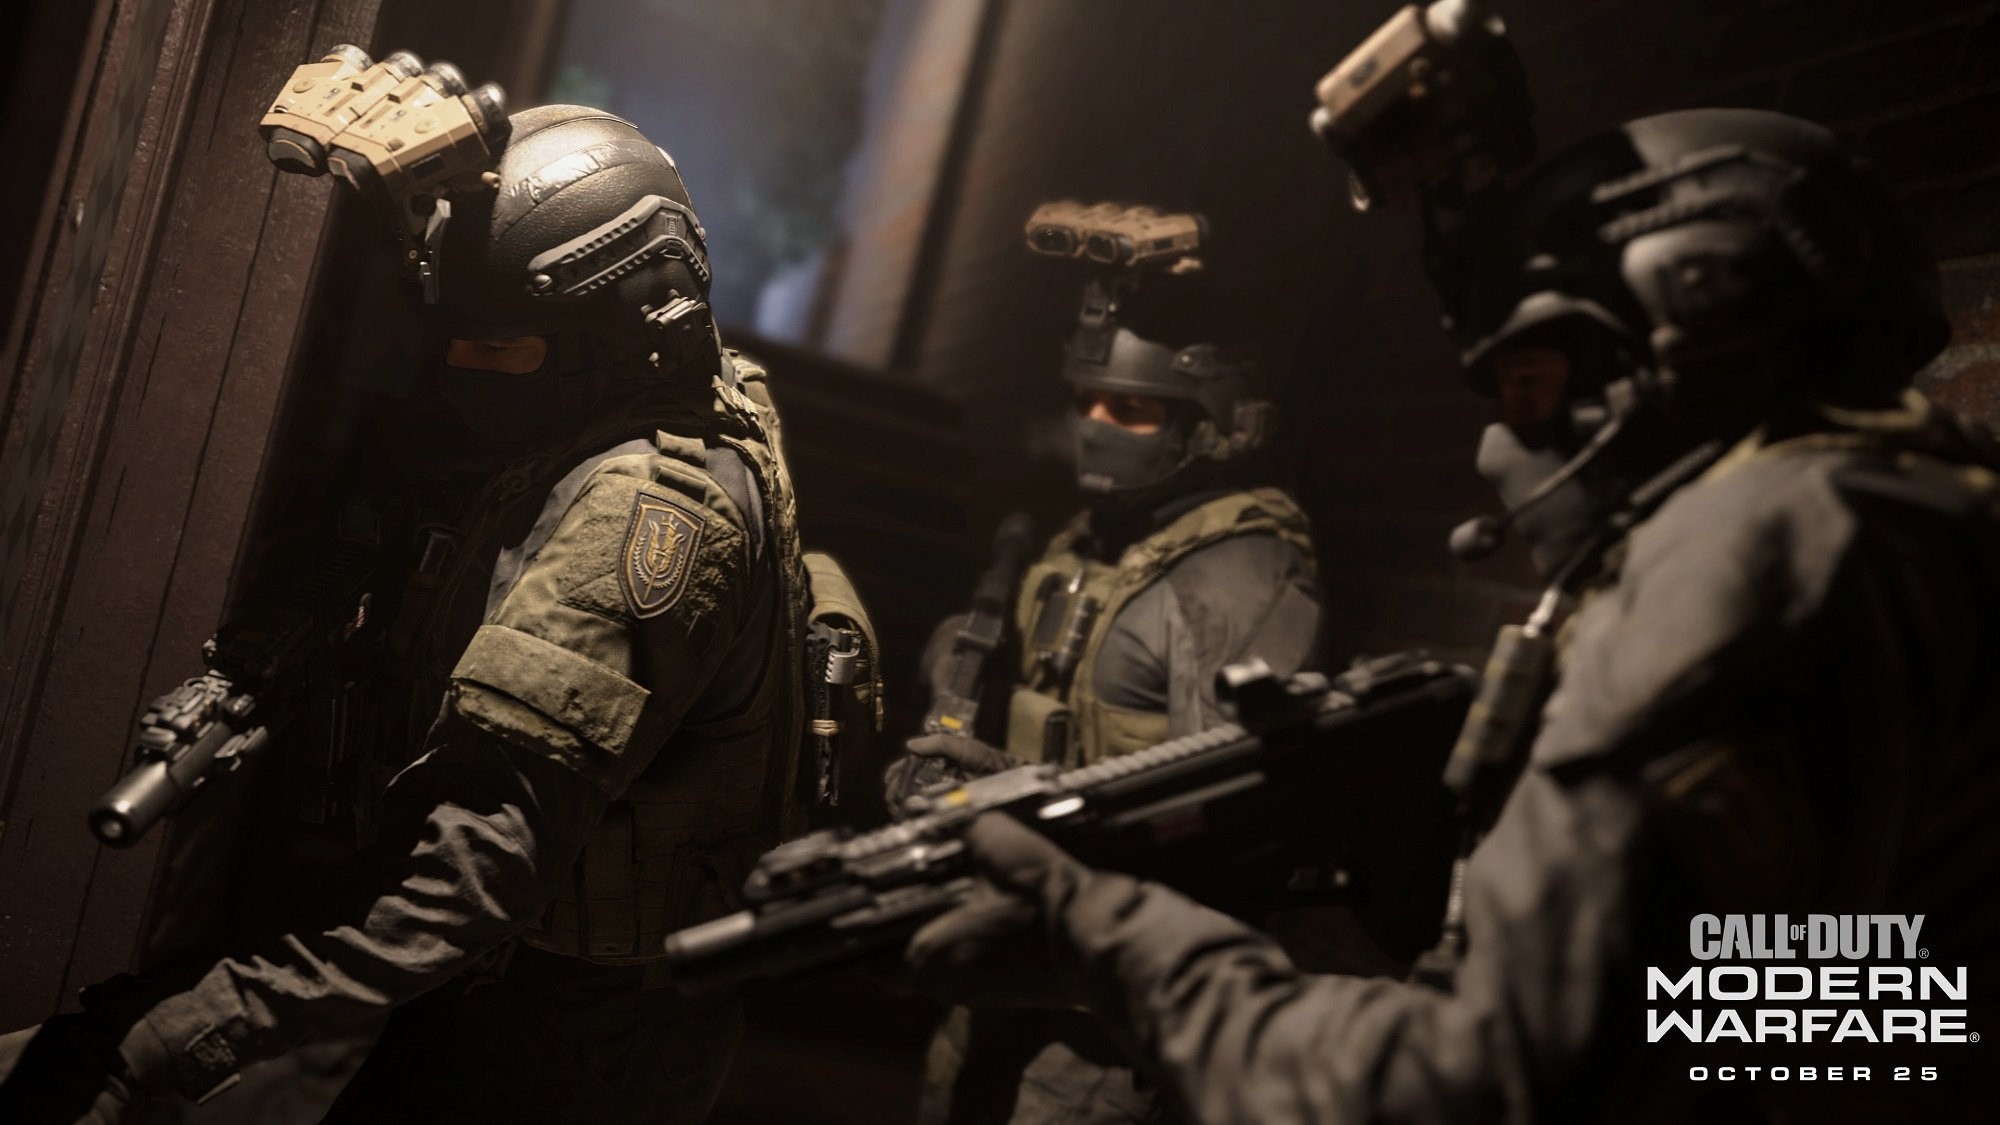 Call of Duty: Modern Warfare won't have a Season Pass and will instead offer post-launch content for free.